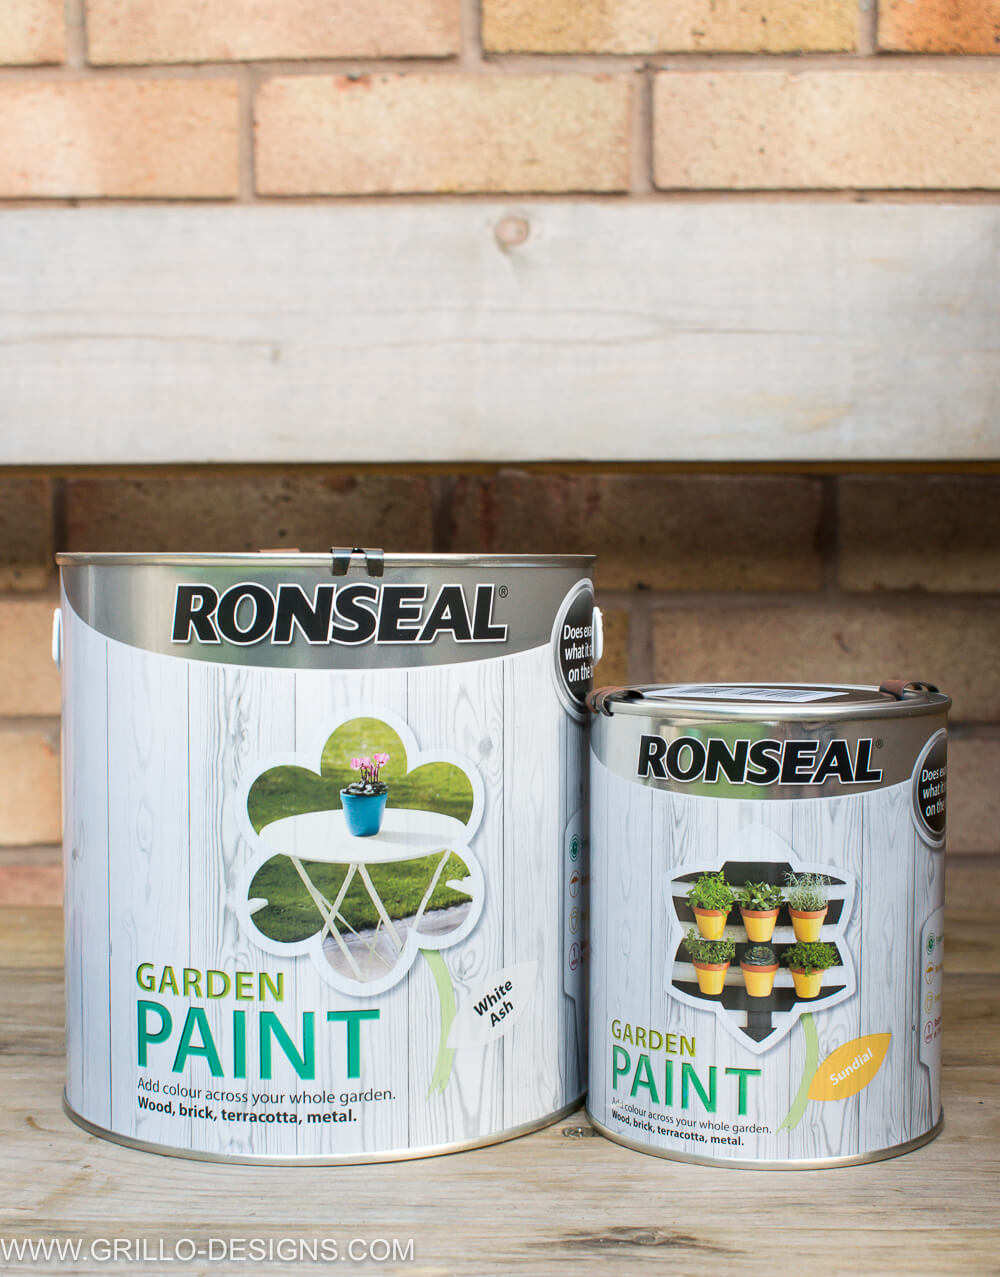 Two cans of ronseal outdoor paint pictured on a wooden surface